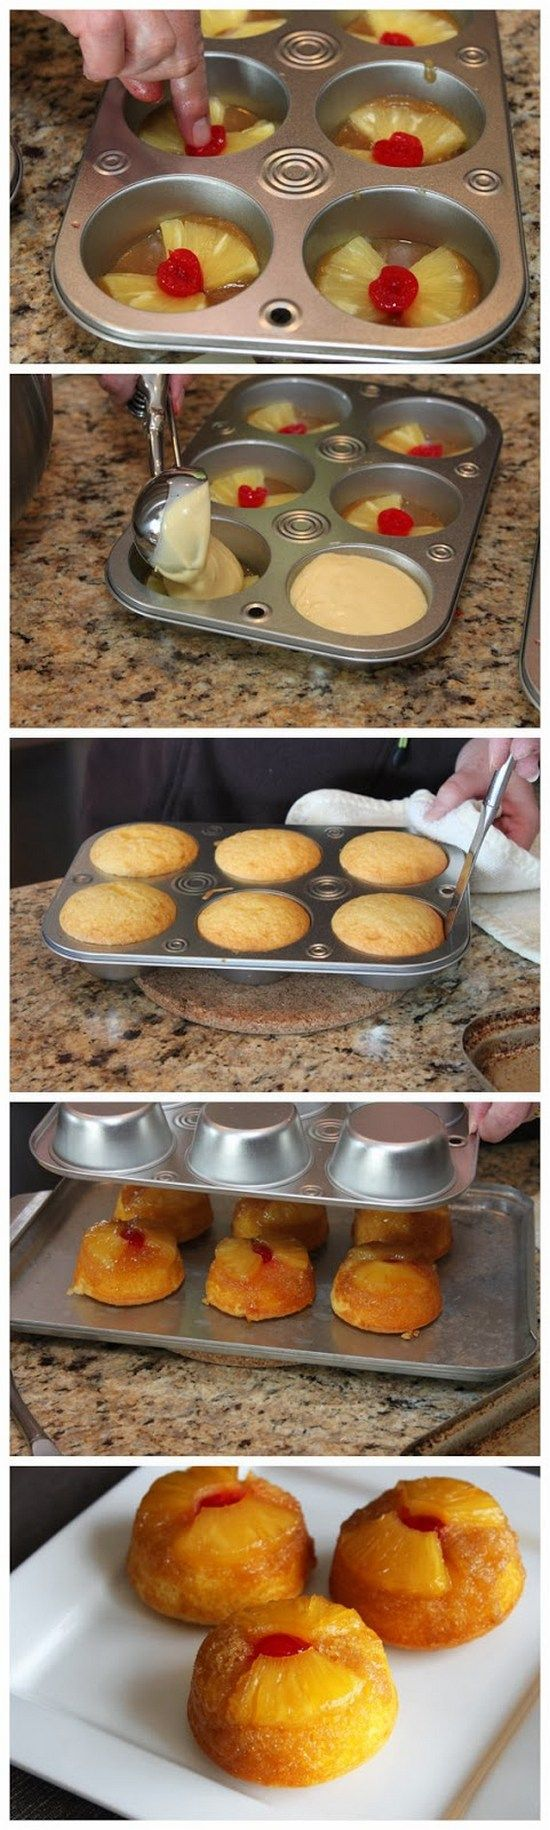 Pineapple Upside-Down Cupcakes. These cupcakes are made with pineapple cake mix, crushed pineapple, and brown sugar. They are light like cloud. Delicious!